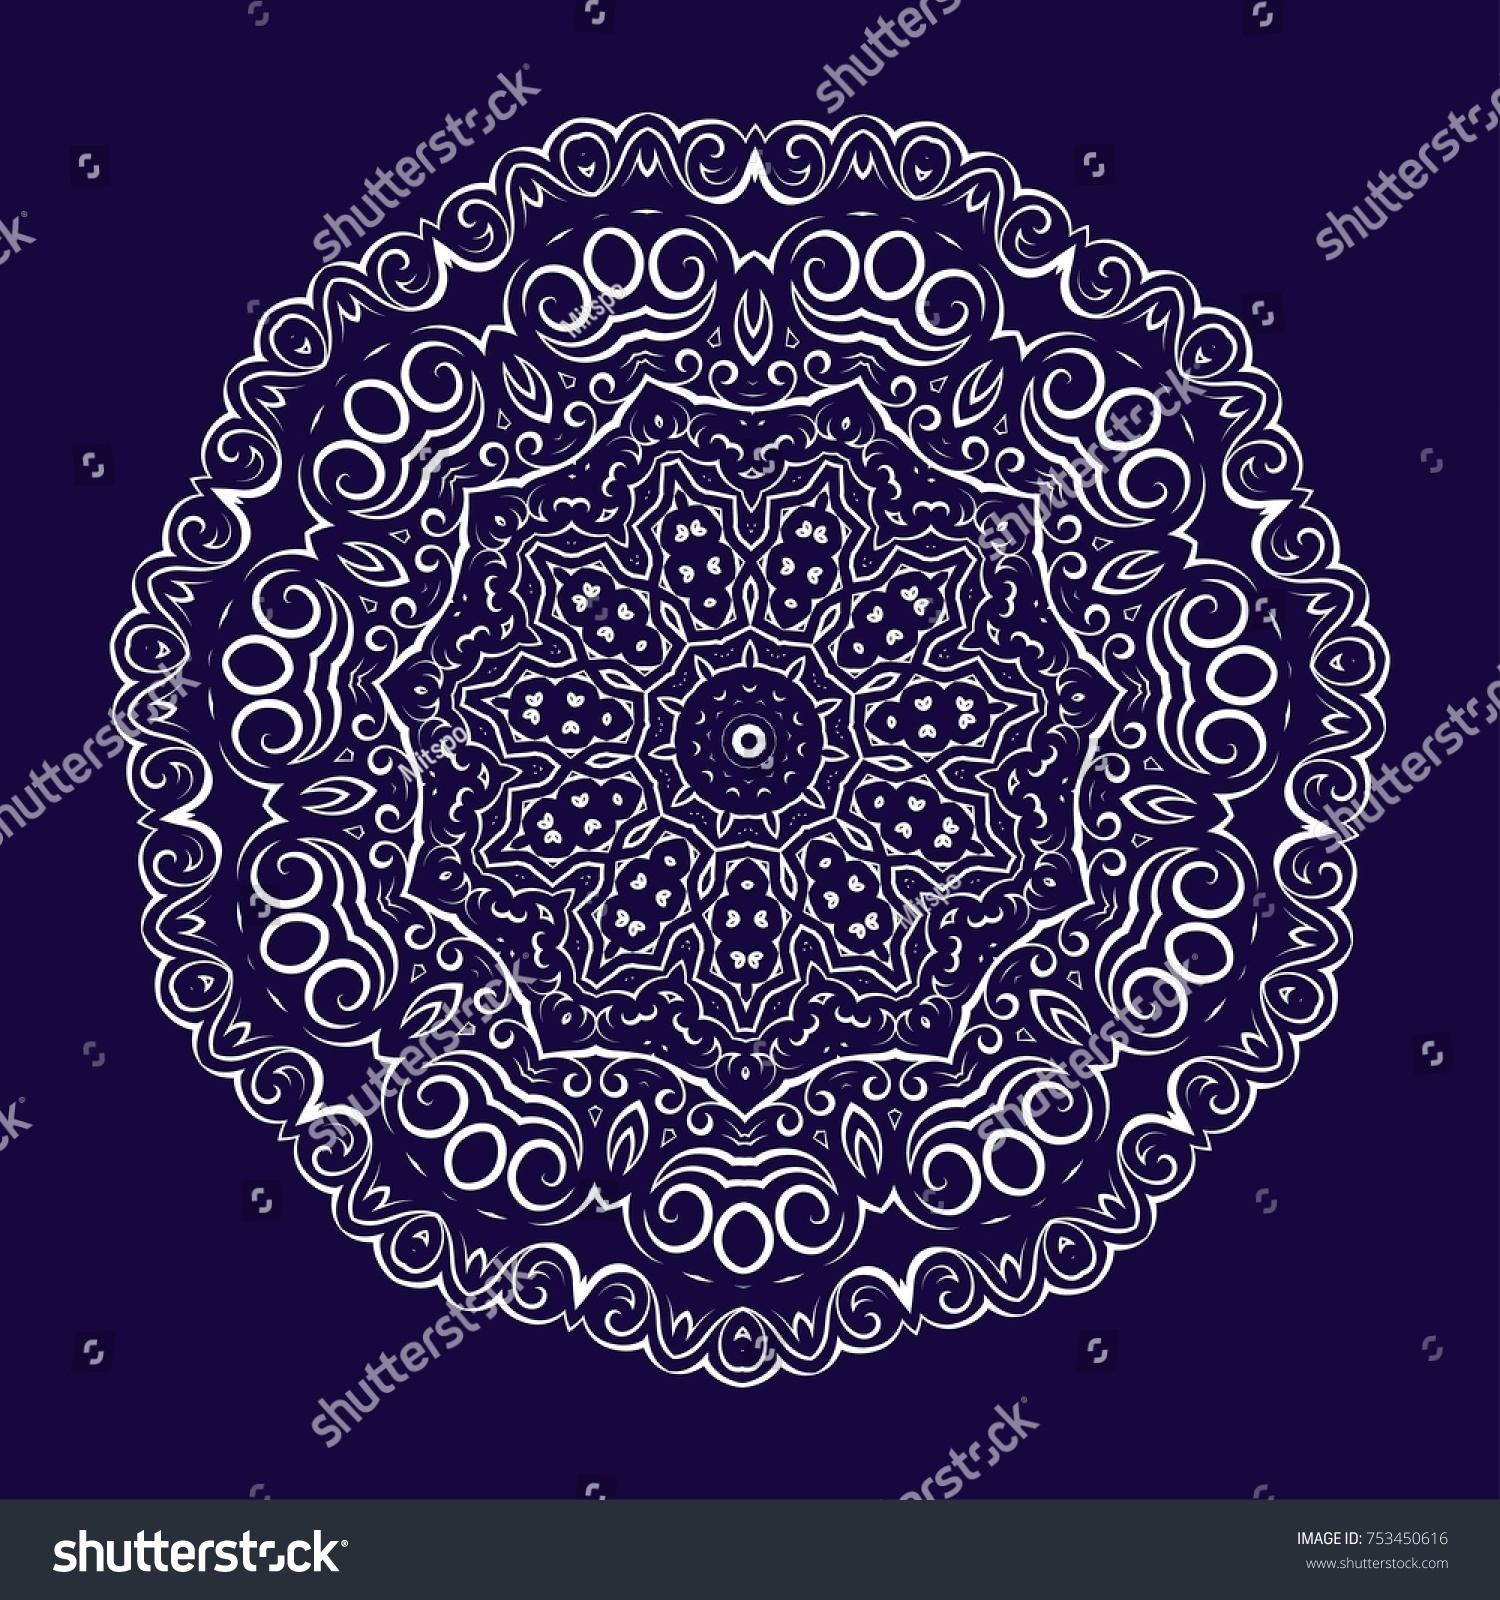 Calligraphy Abstract Floral Symmetry Element Vector Stock Vector ...